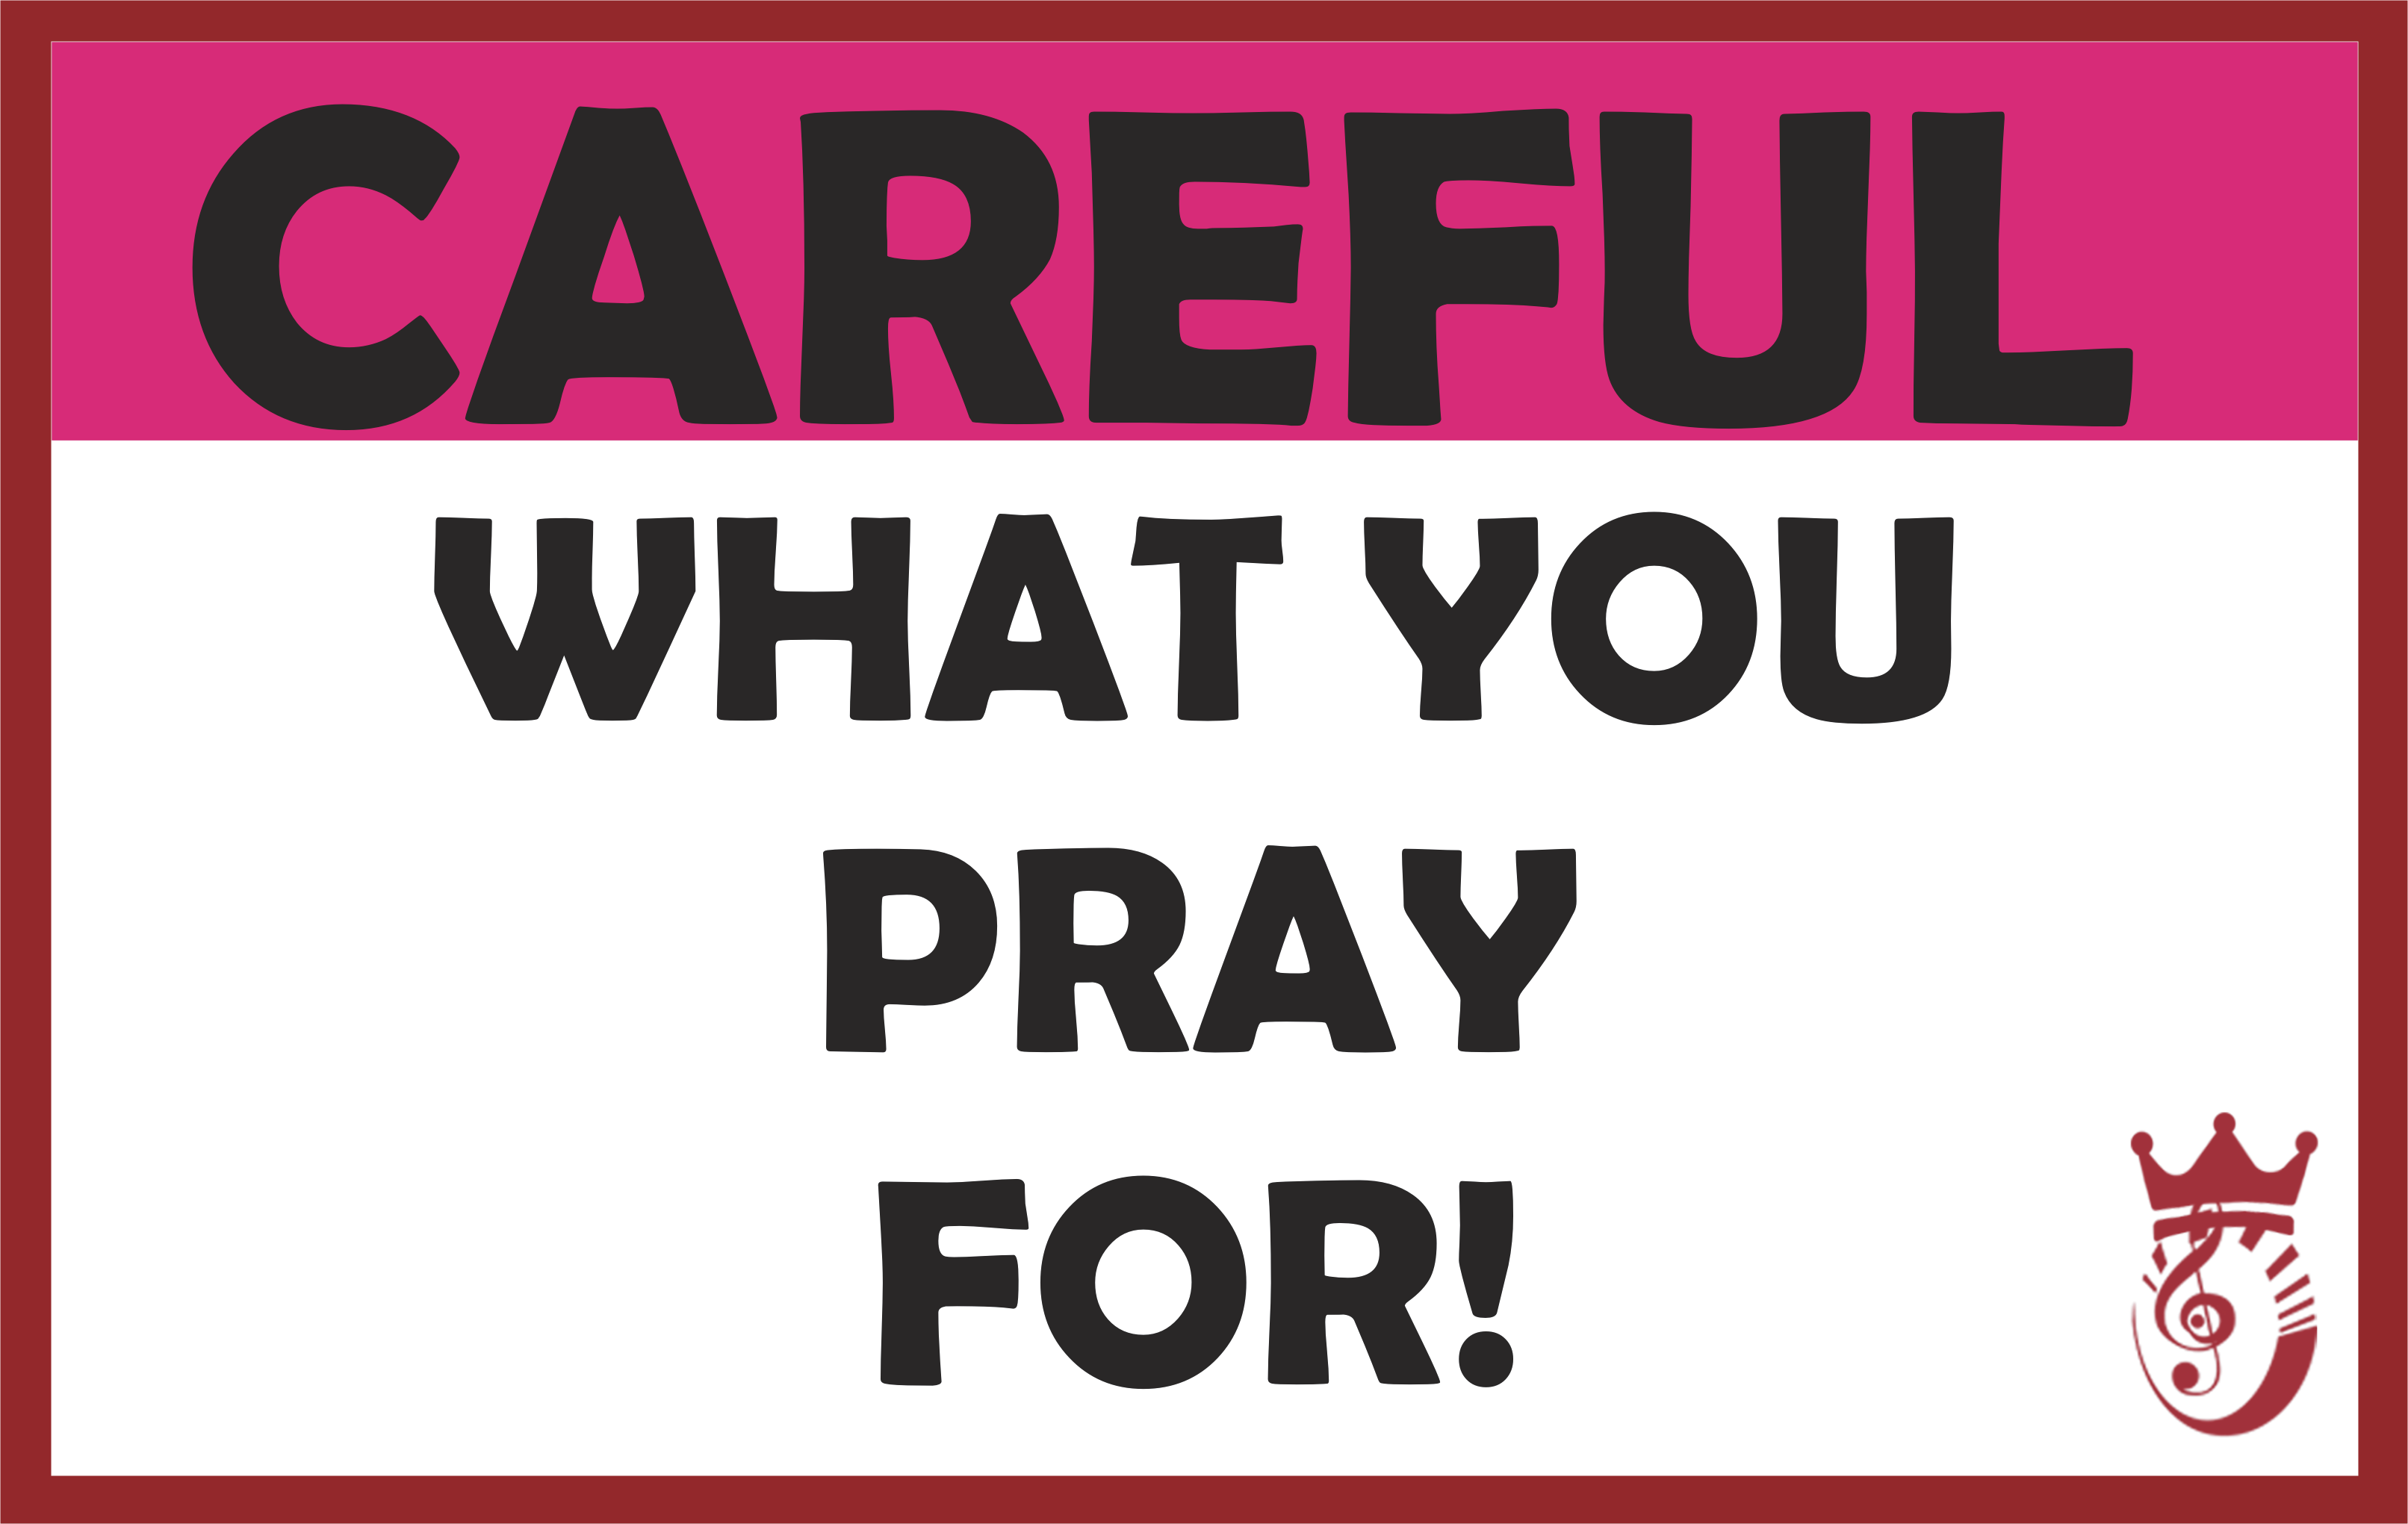 Careful What You Pray For